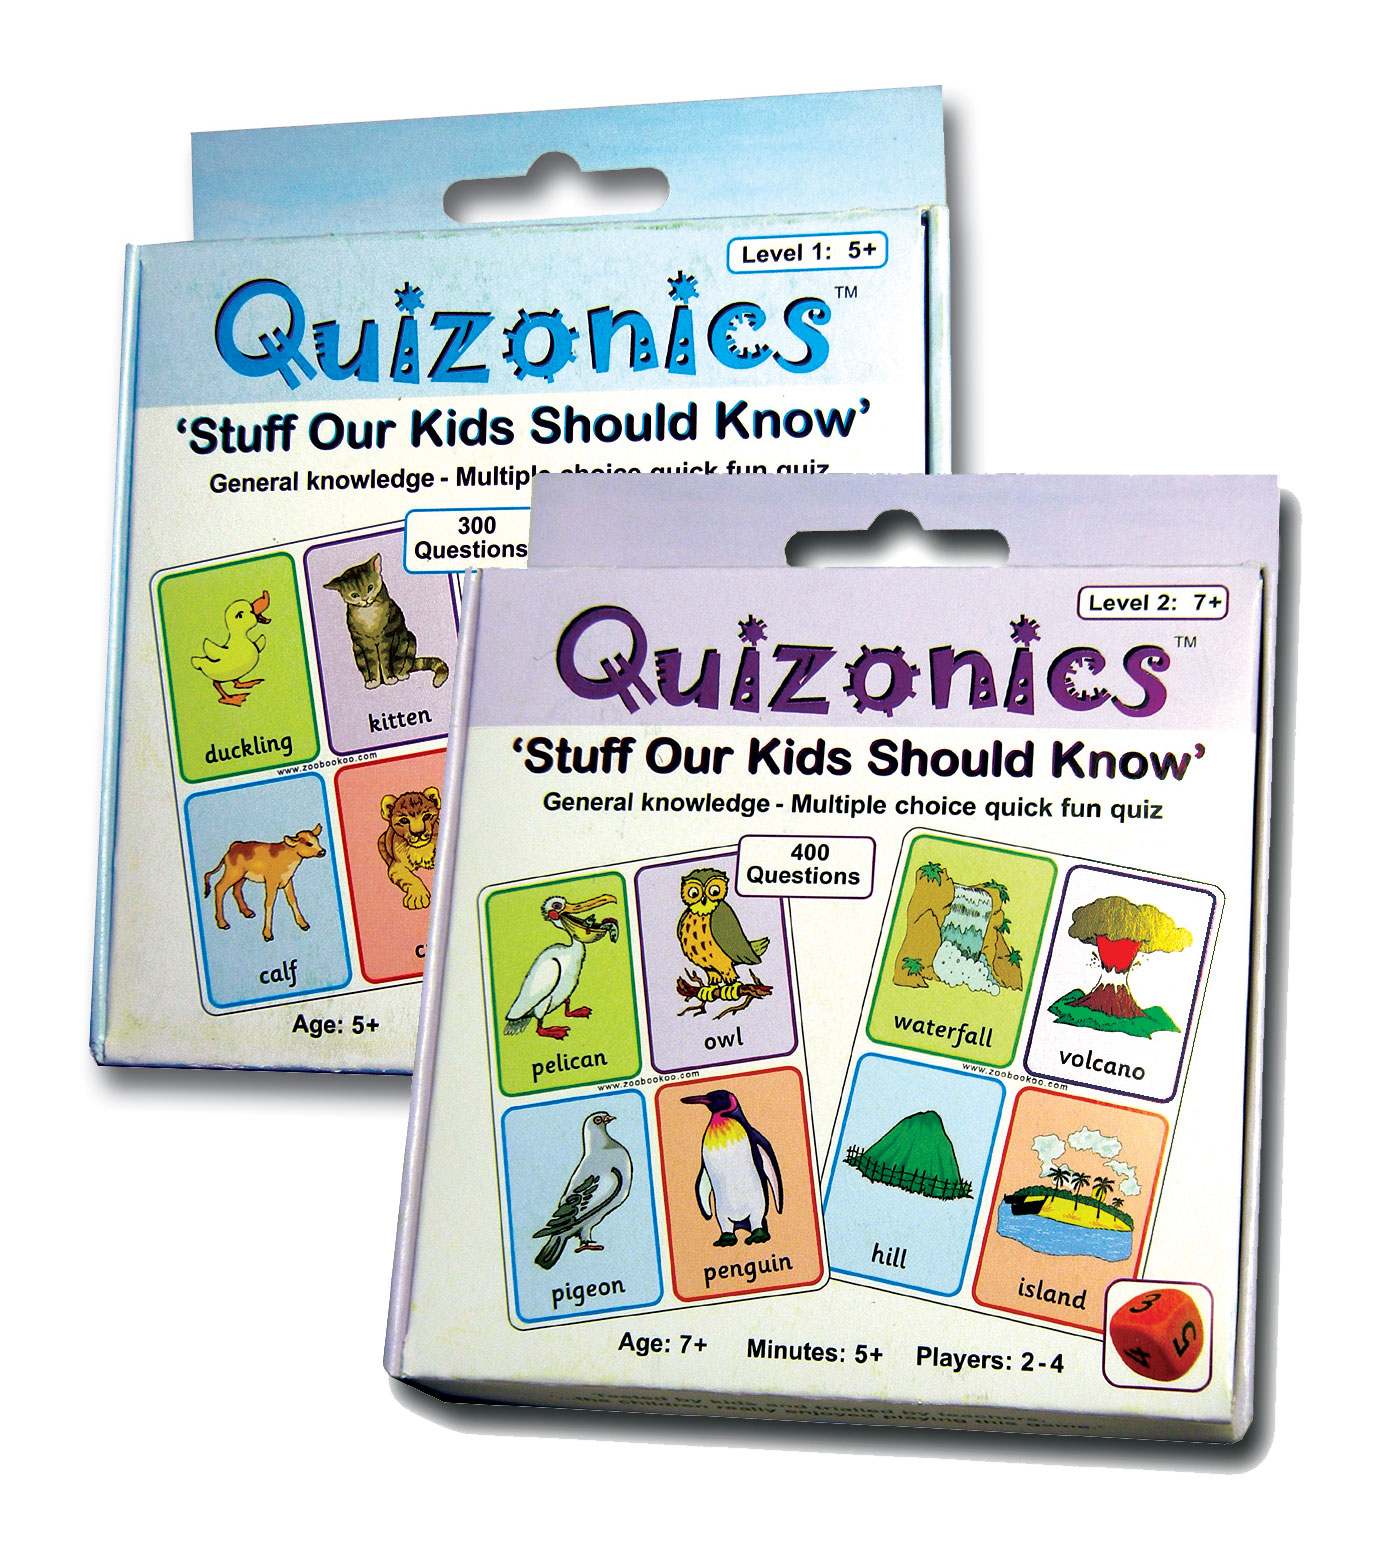 Quizonics - reviewed for What To Do With The Kids - What To Do With ...